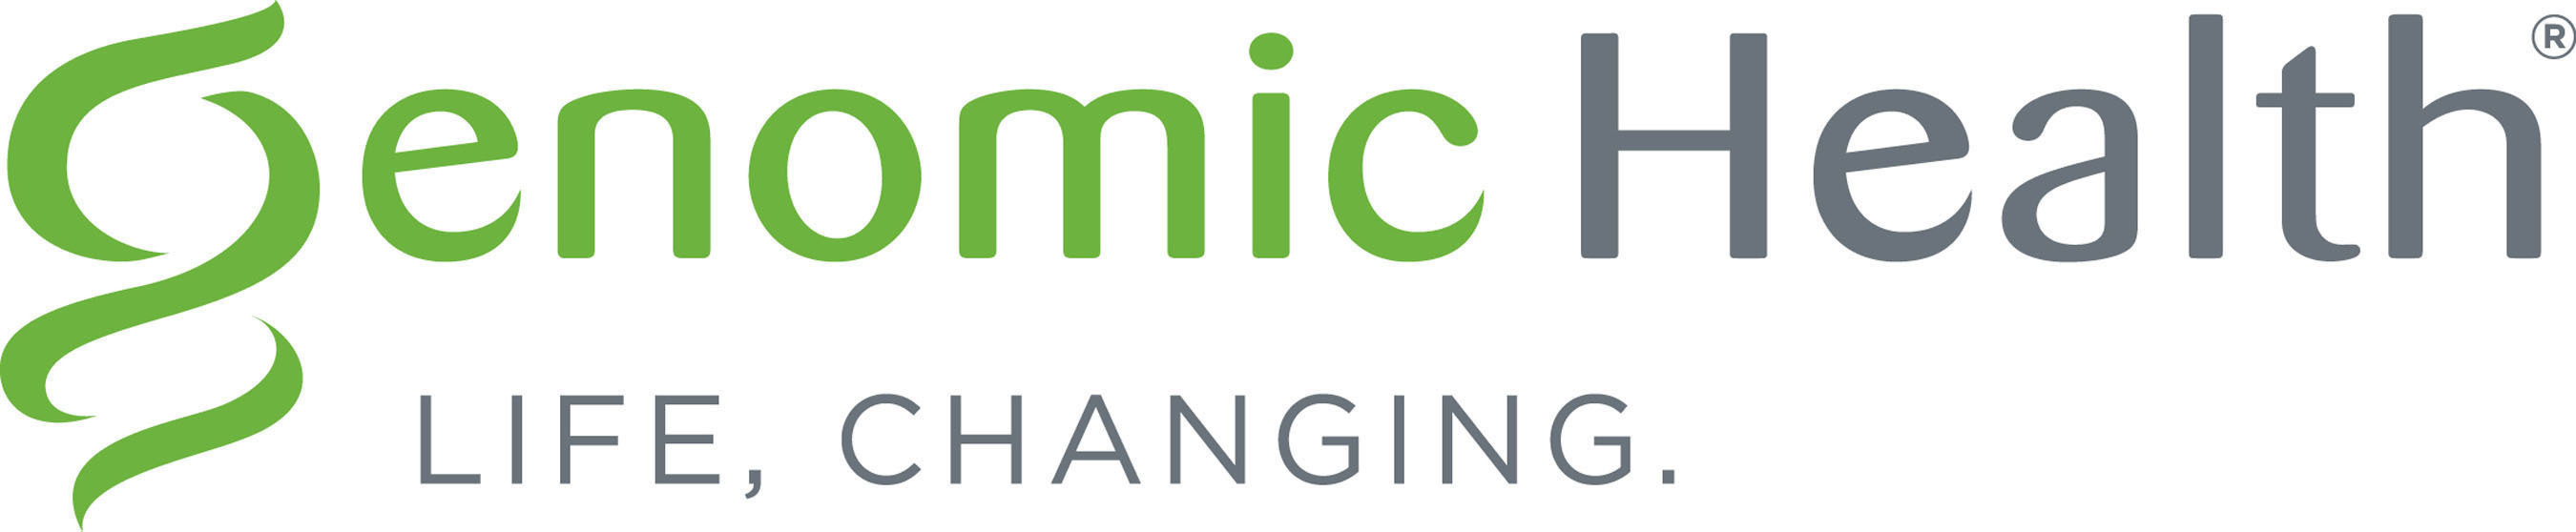 Genomic Health, Inc. logo.